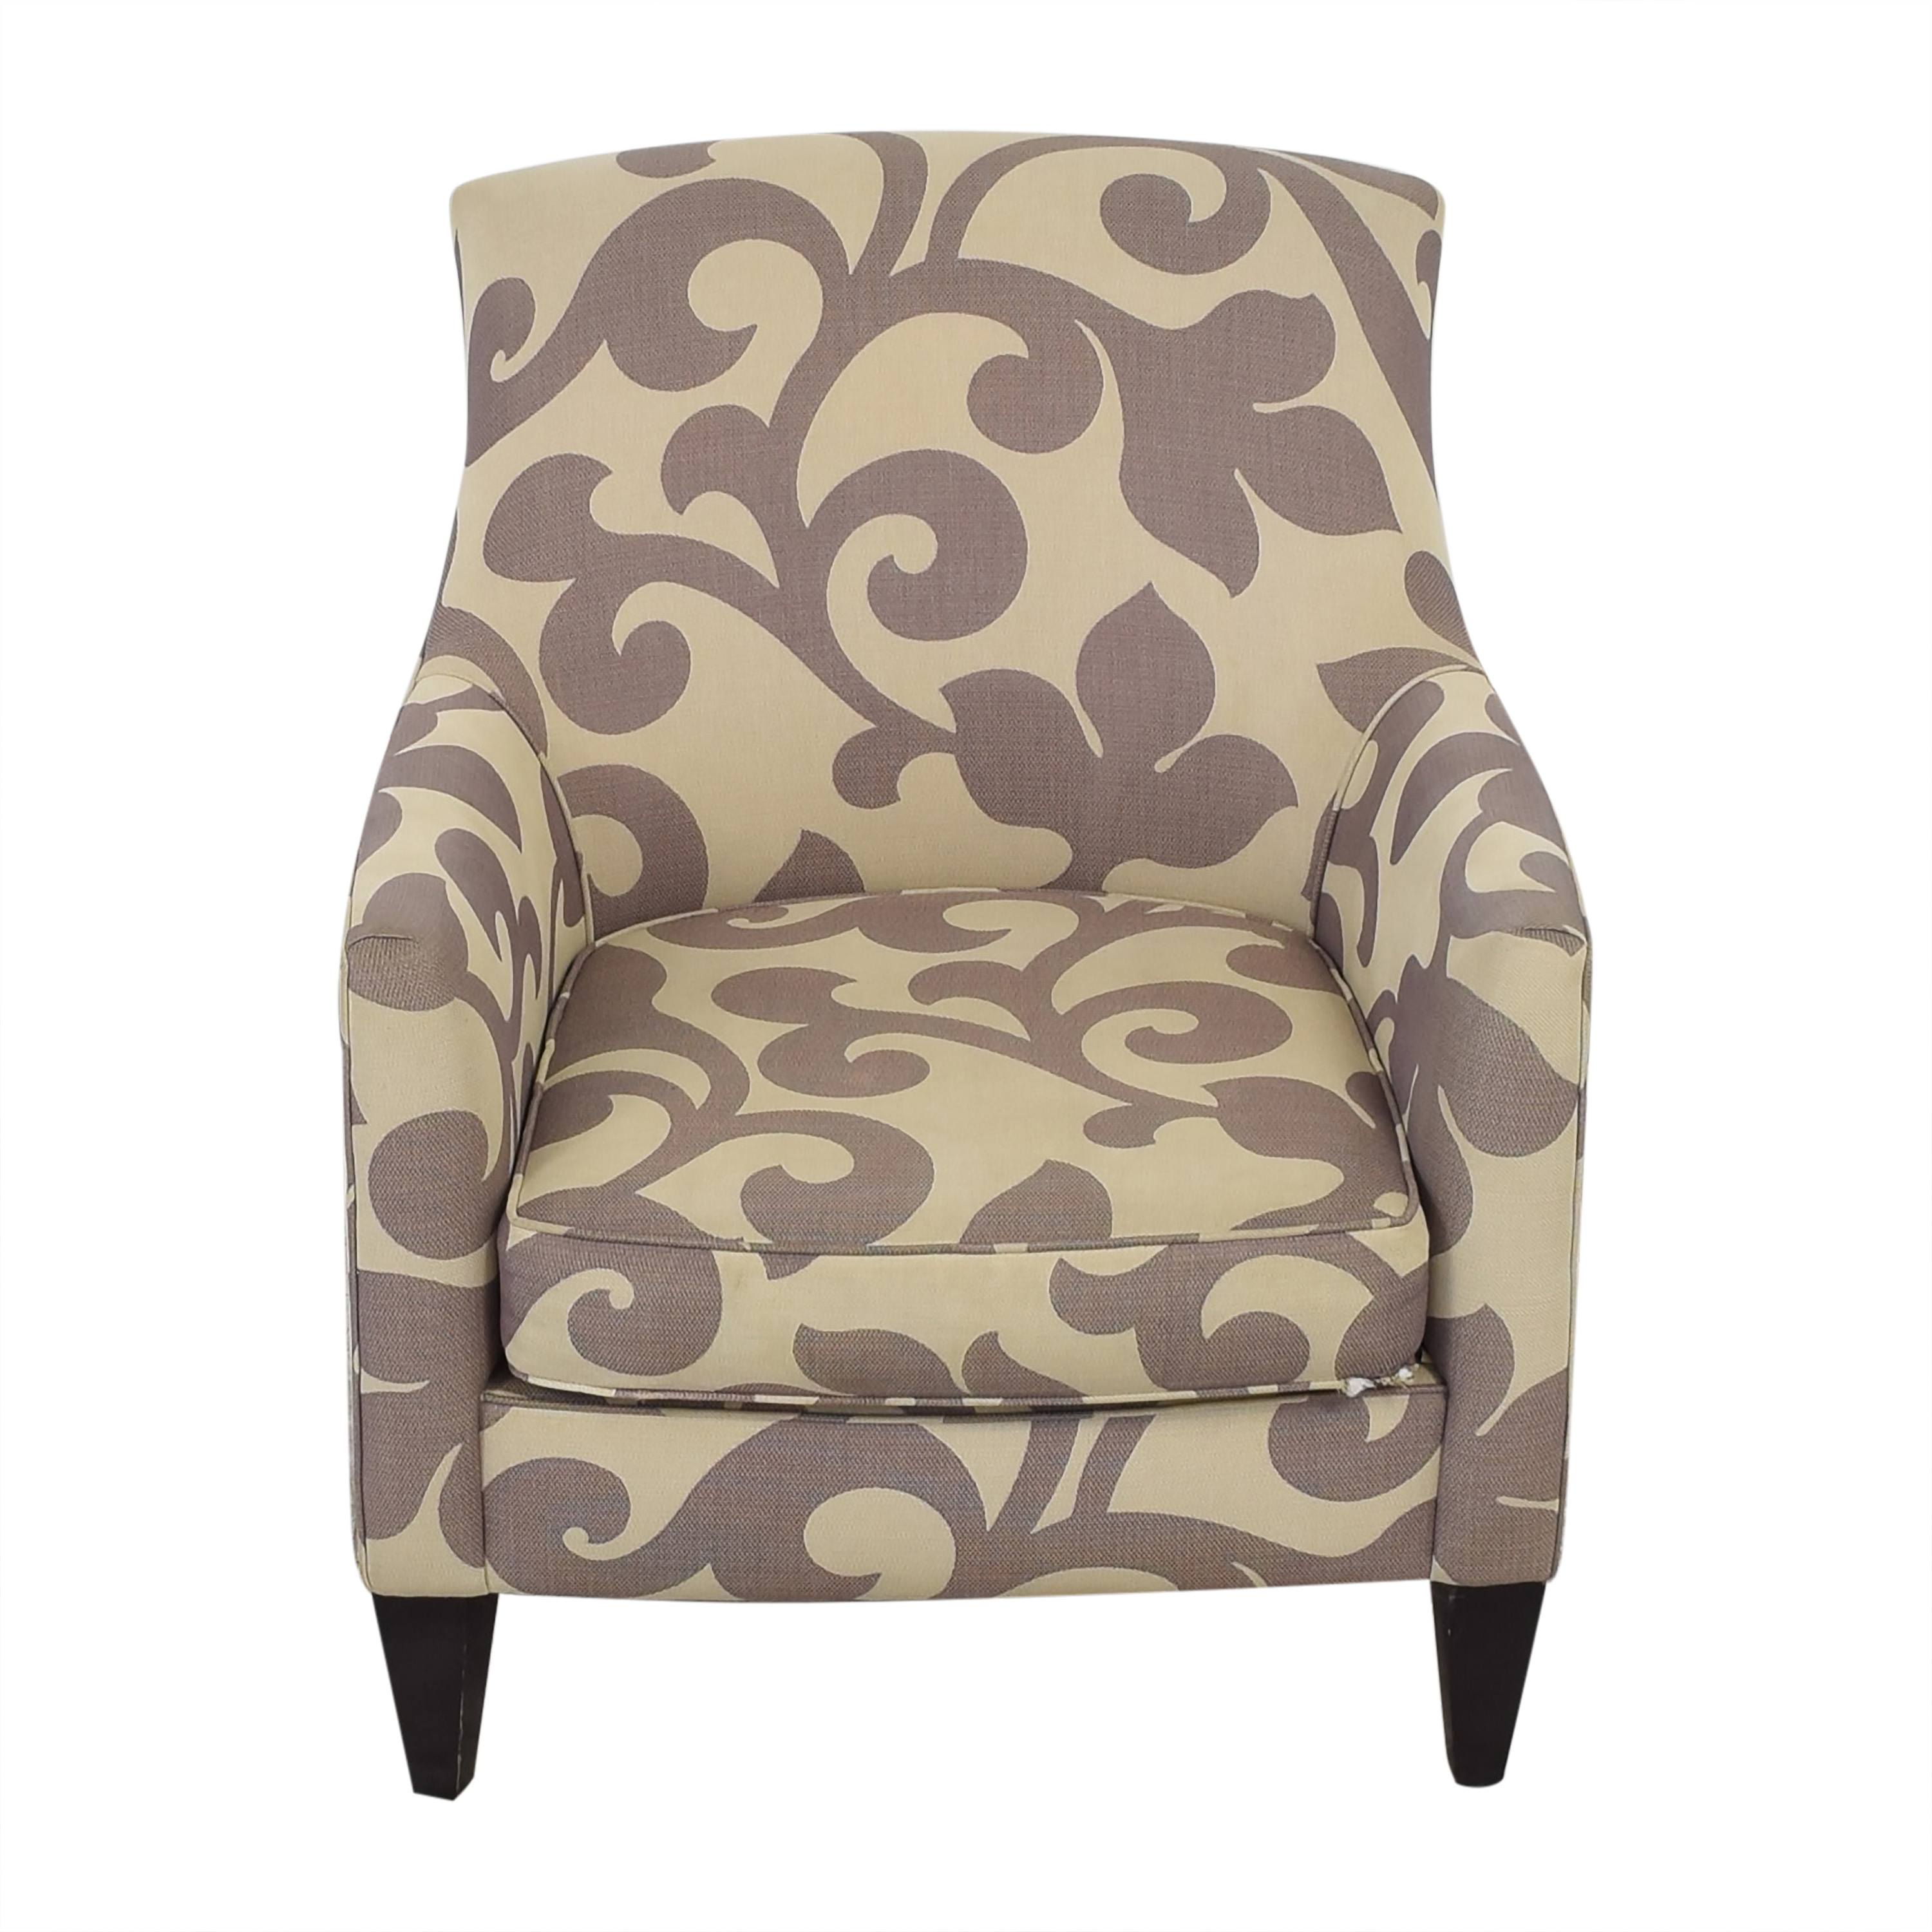 Crate & Barrel Crate & Barrel Accent Chair Accent Chairs